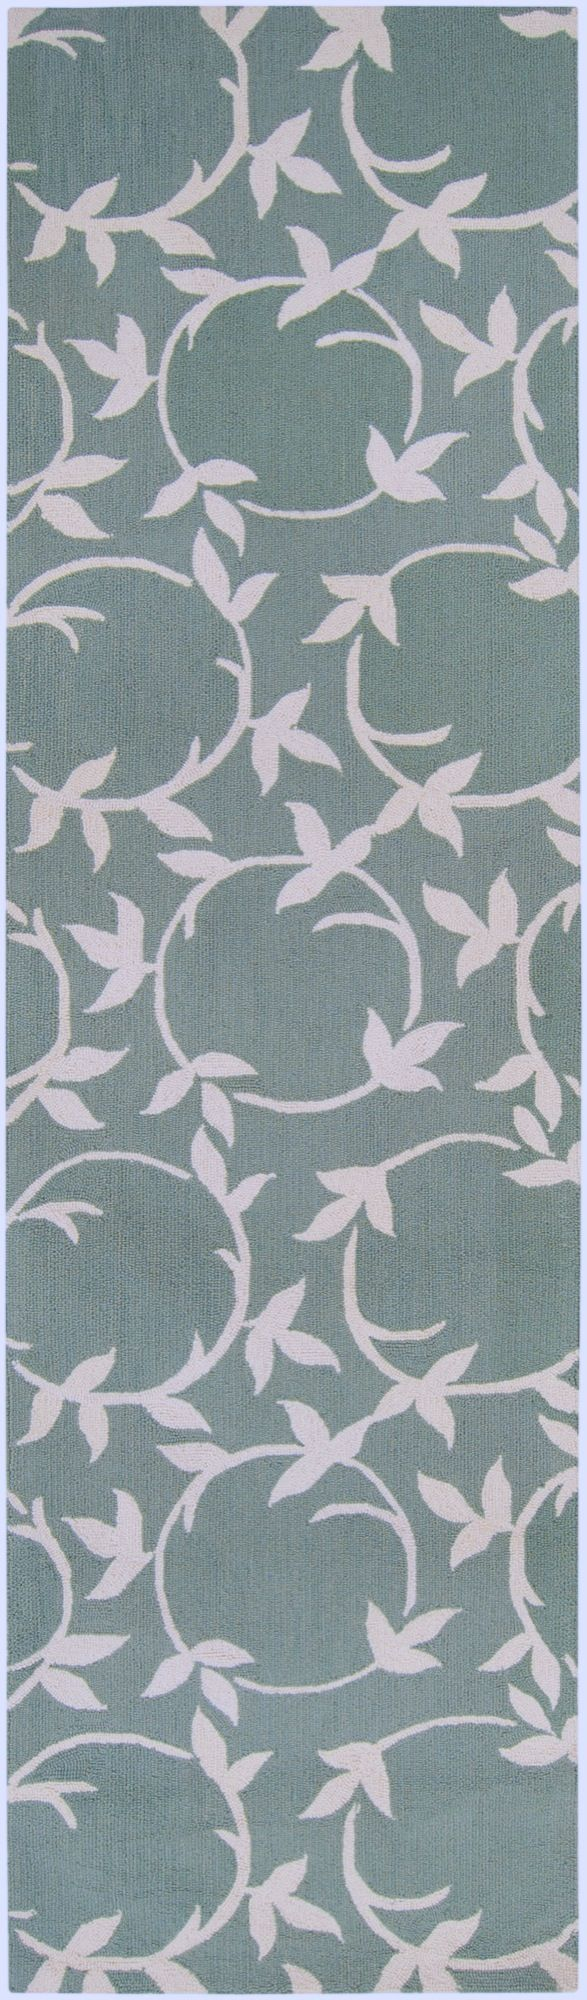 surya inspired classics transitional area rug collection